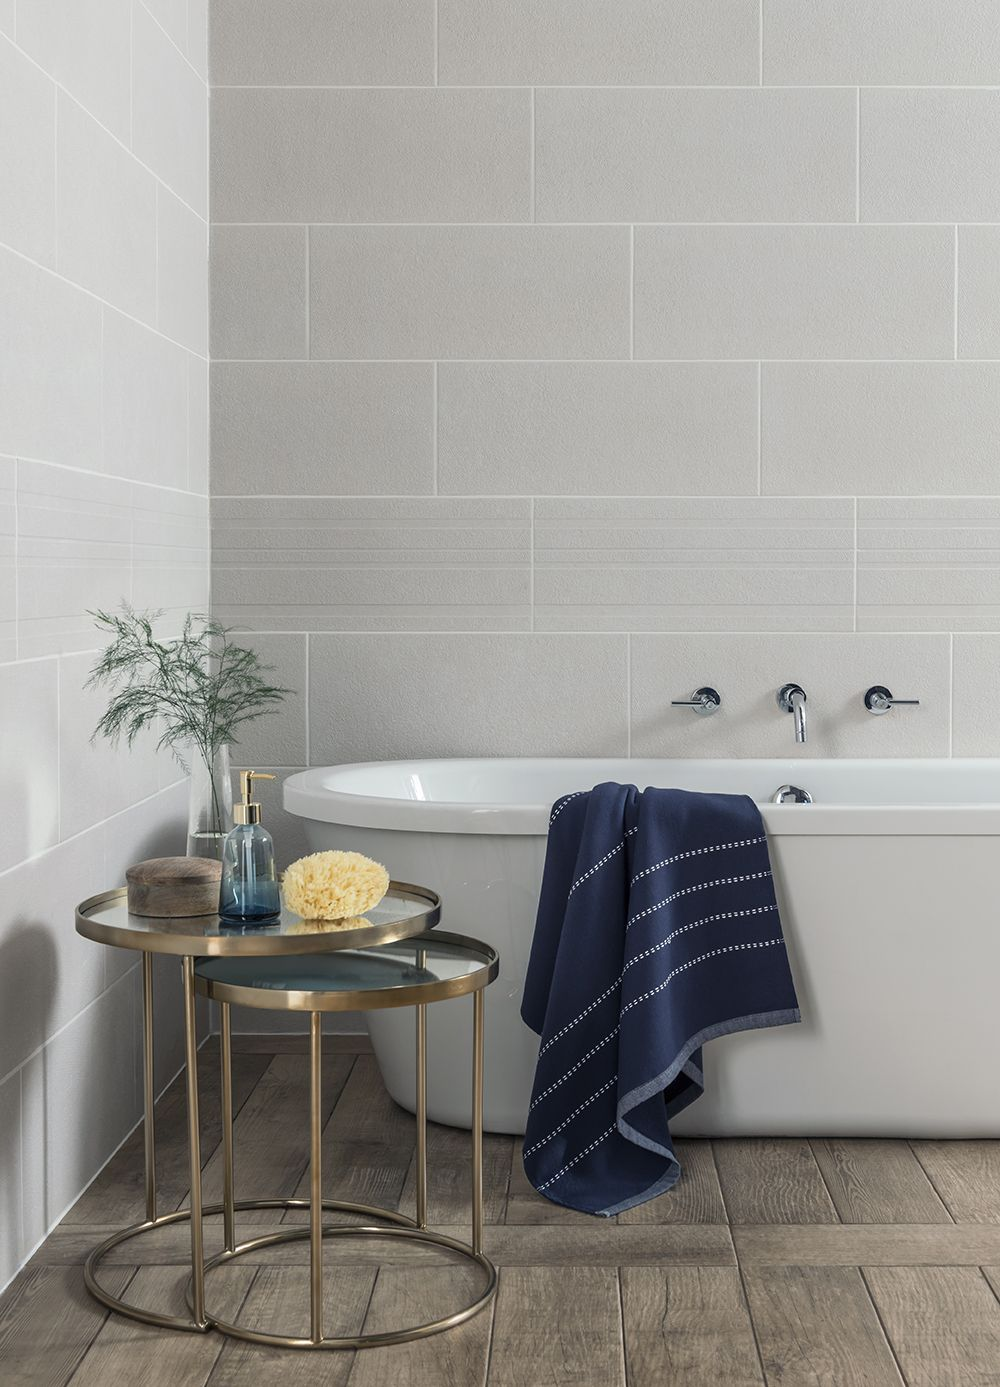 Callow By Topps Tiles A Handy Ask The Experts Blog Post From Topps Tiles In Association With Rock My Style Ans Topps Tiles Bathroom Wall Tile Bathroom Layout